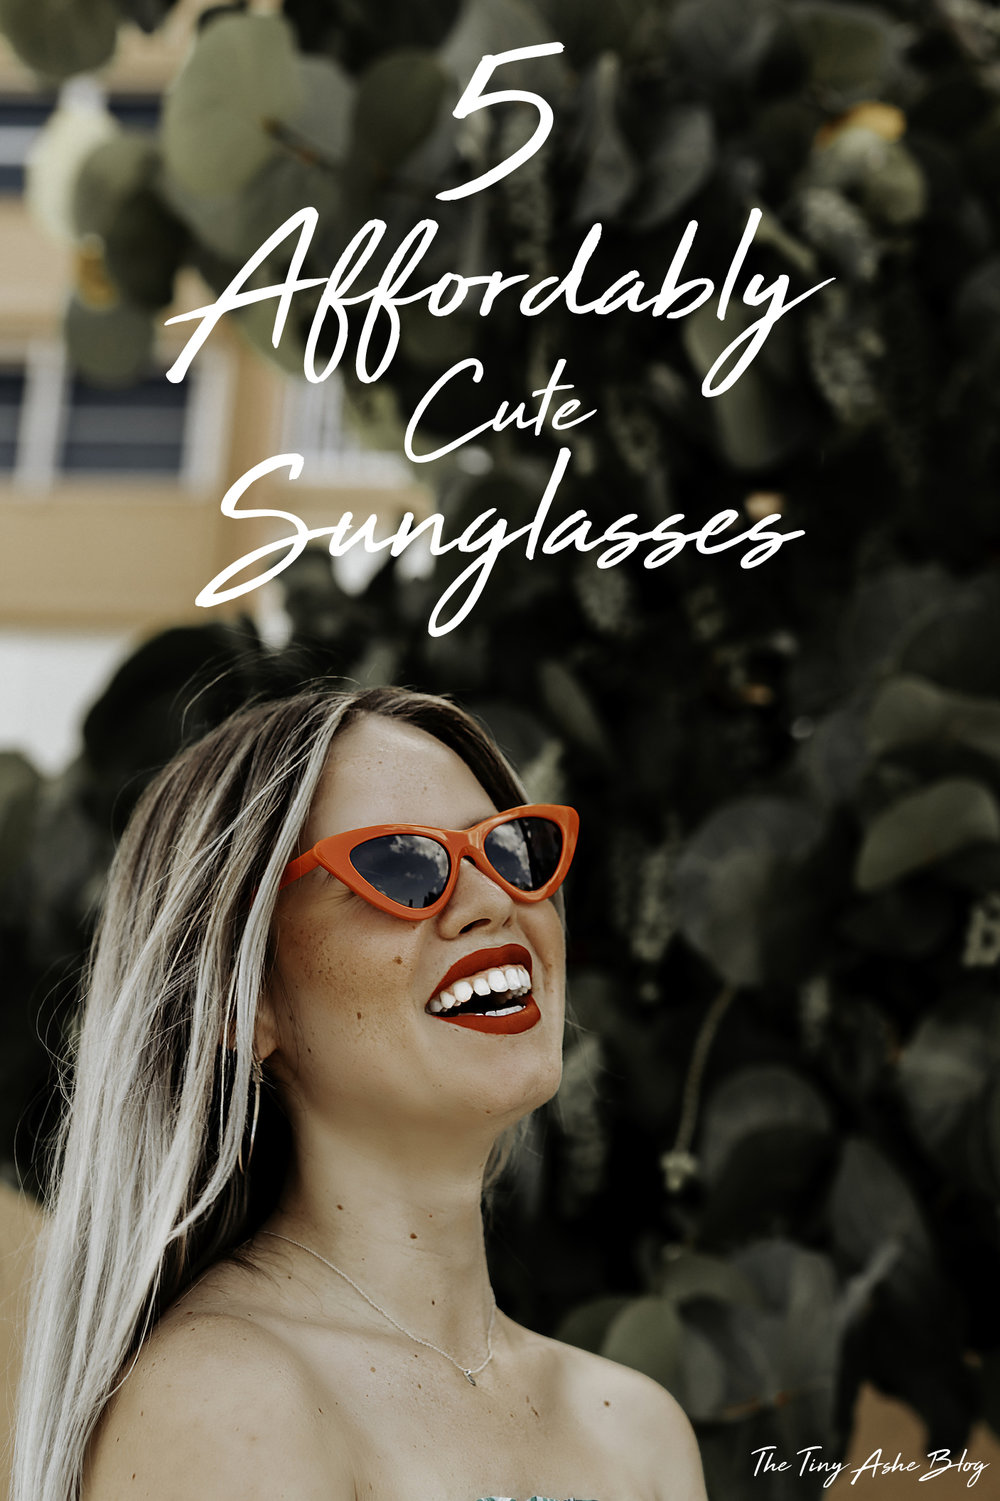 red-sunglasses-ashlee-rose-photography-tiny-ashe-blog-tropical-florida-shadyveu-amazon-small-blog-01.jpg